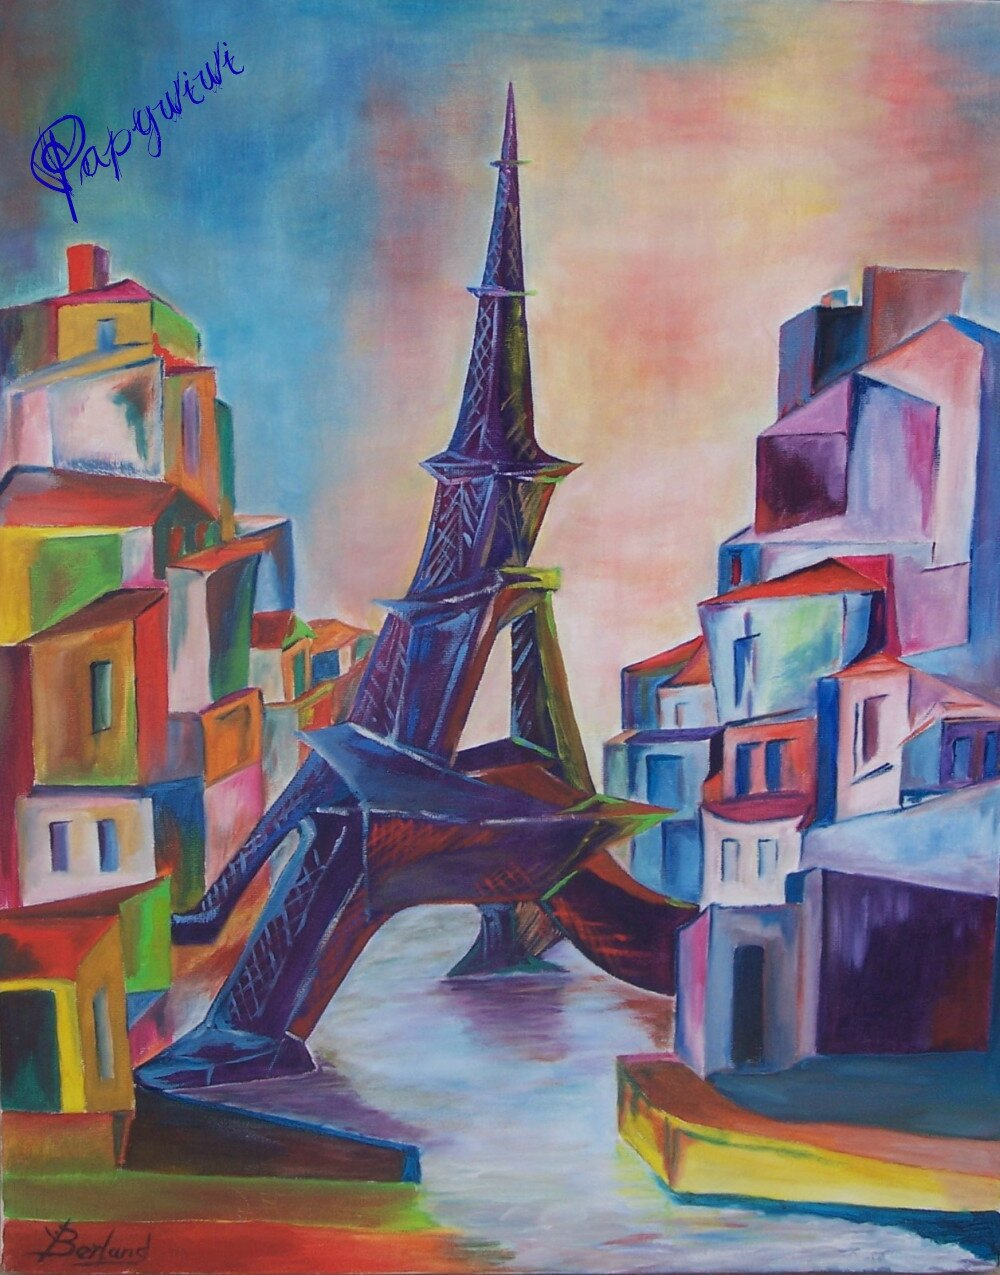 23 la tour eiffel photo de album de mes oeuvres blog art peintures de papy wiwi. Black Bedroom Furniture Sets. Home Design Ideas